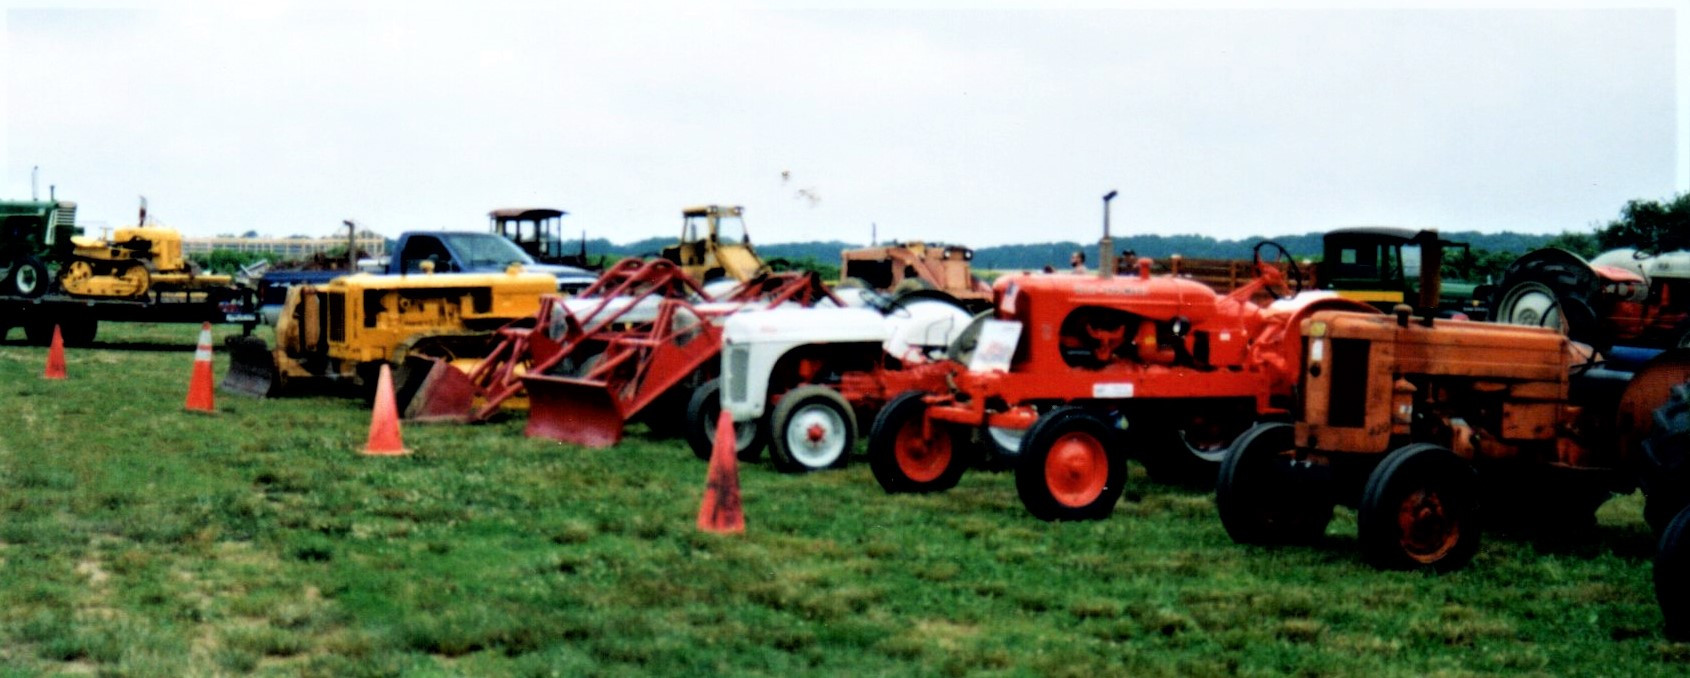 Tractors on the field